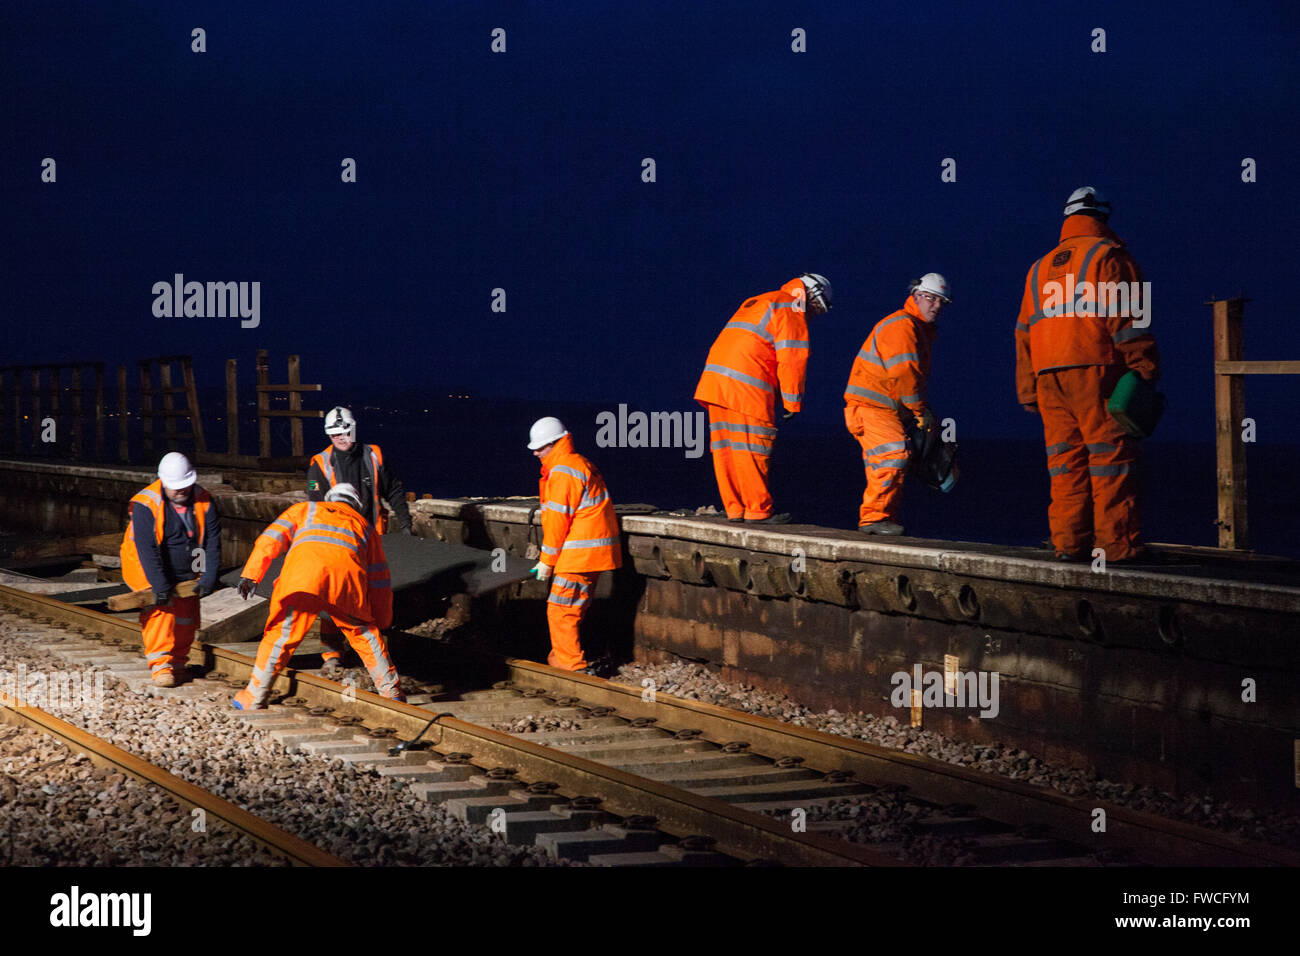 05/02/13 repairing the railway line damage due to heavy seas and storms at Dawlish, Devon, England. - Stock Image